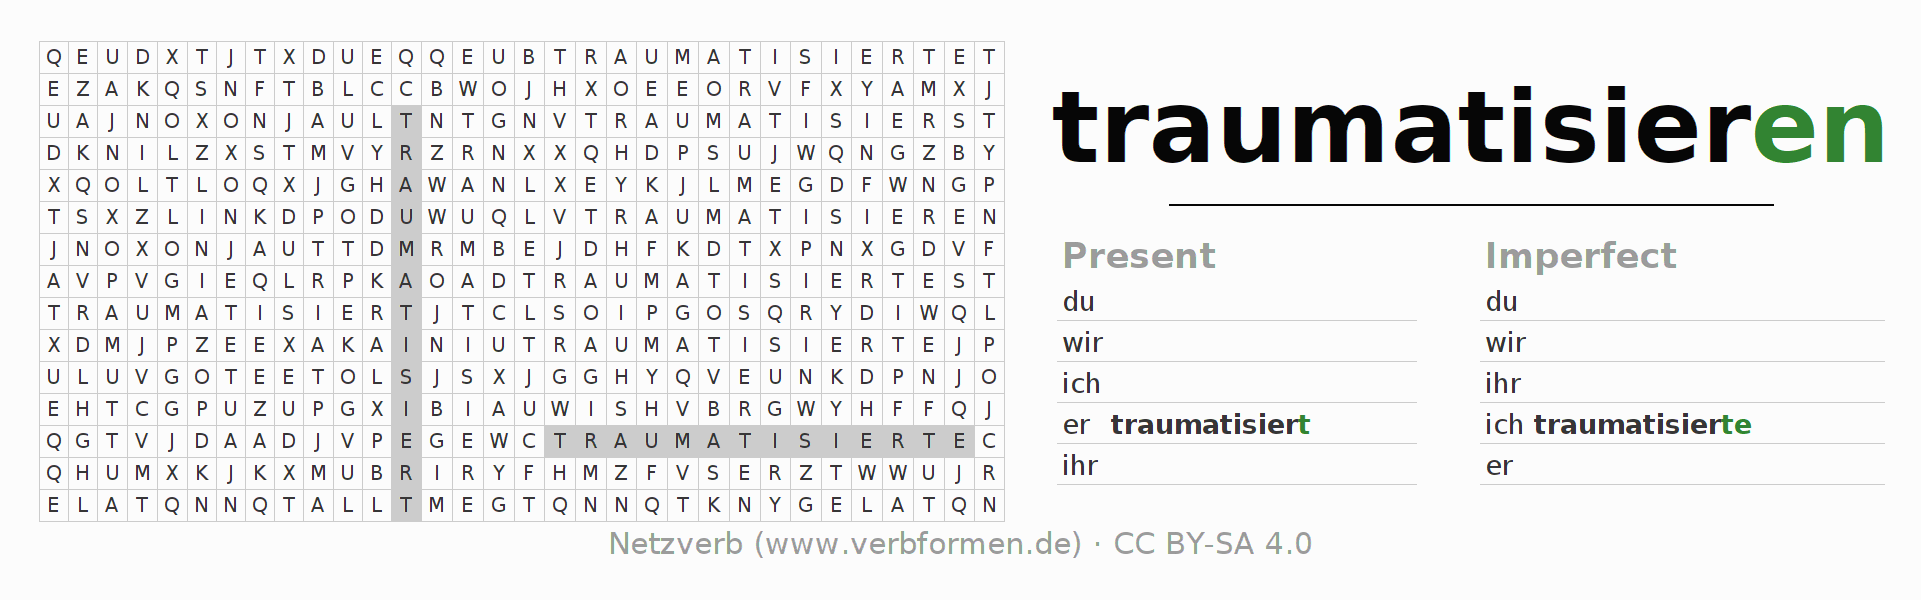 Word search puzzle for the conjugation of the verb traumatisieren